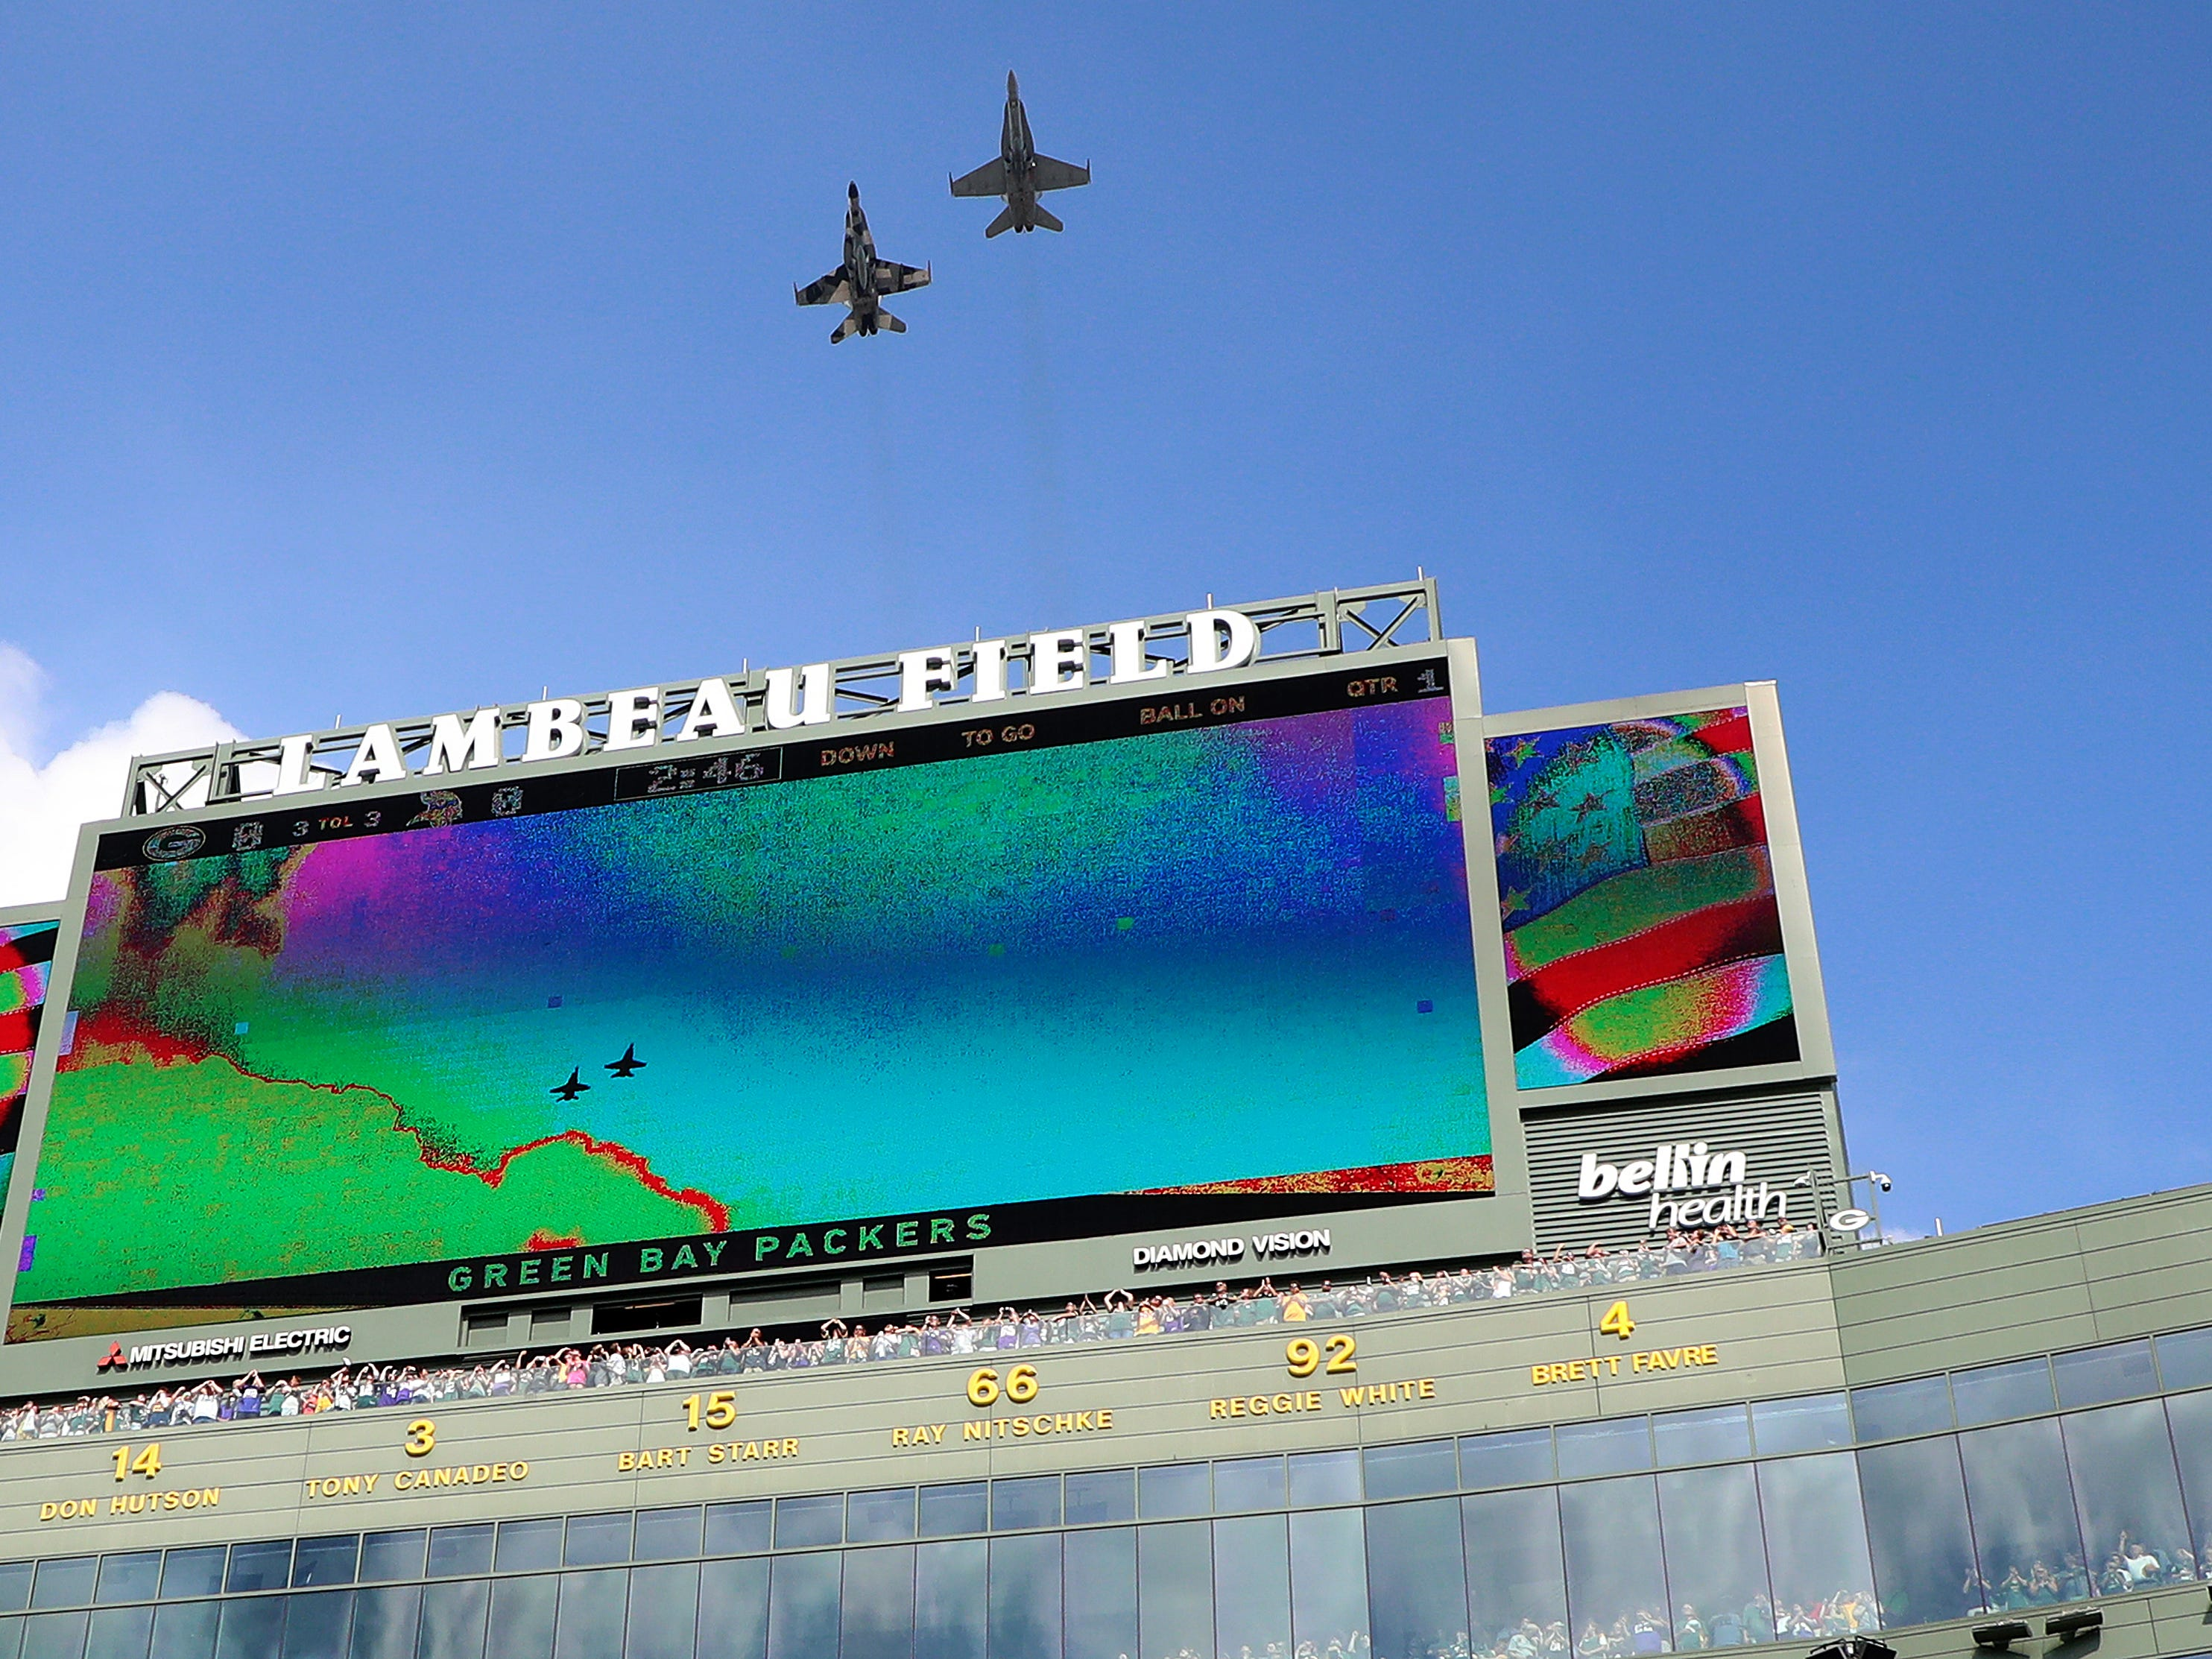 Jets fly over the crowd before the Packers game against the Minnesota Vikings Sunday, September 16, 2018 at Lambeau Field in Green Bay, WIs.